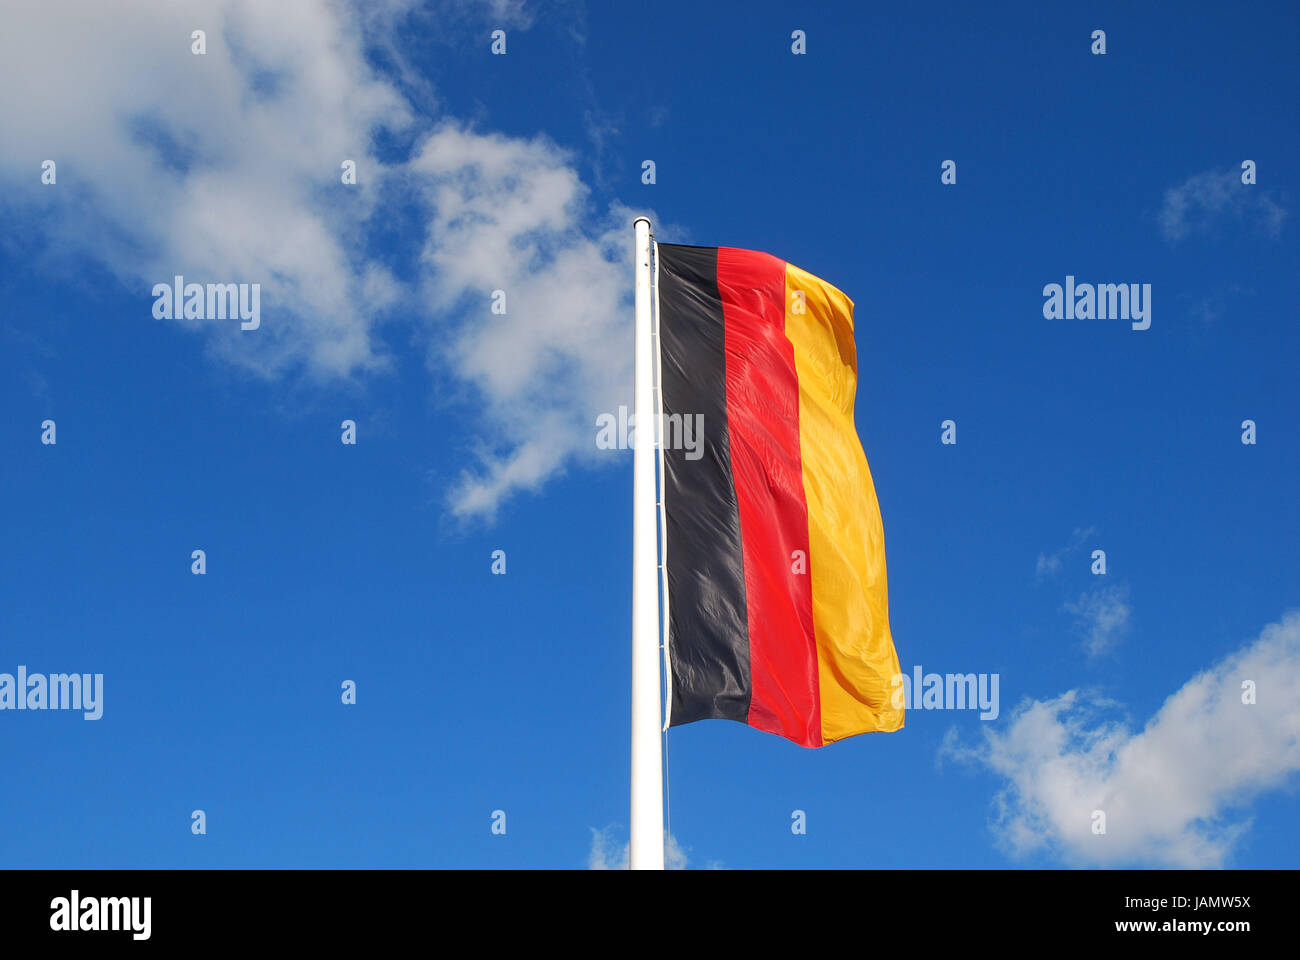 Flagpole,Germany flag,sky,mast,flag,flag,national flag,national colours,colours,black,red,gold,the FRG,in German,Germany,Germany - Stock Image